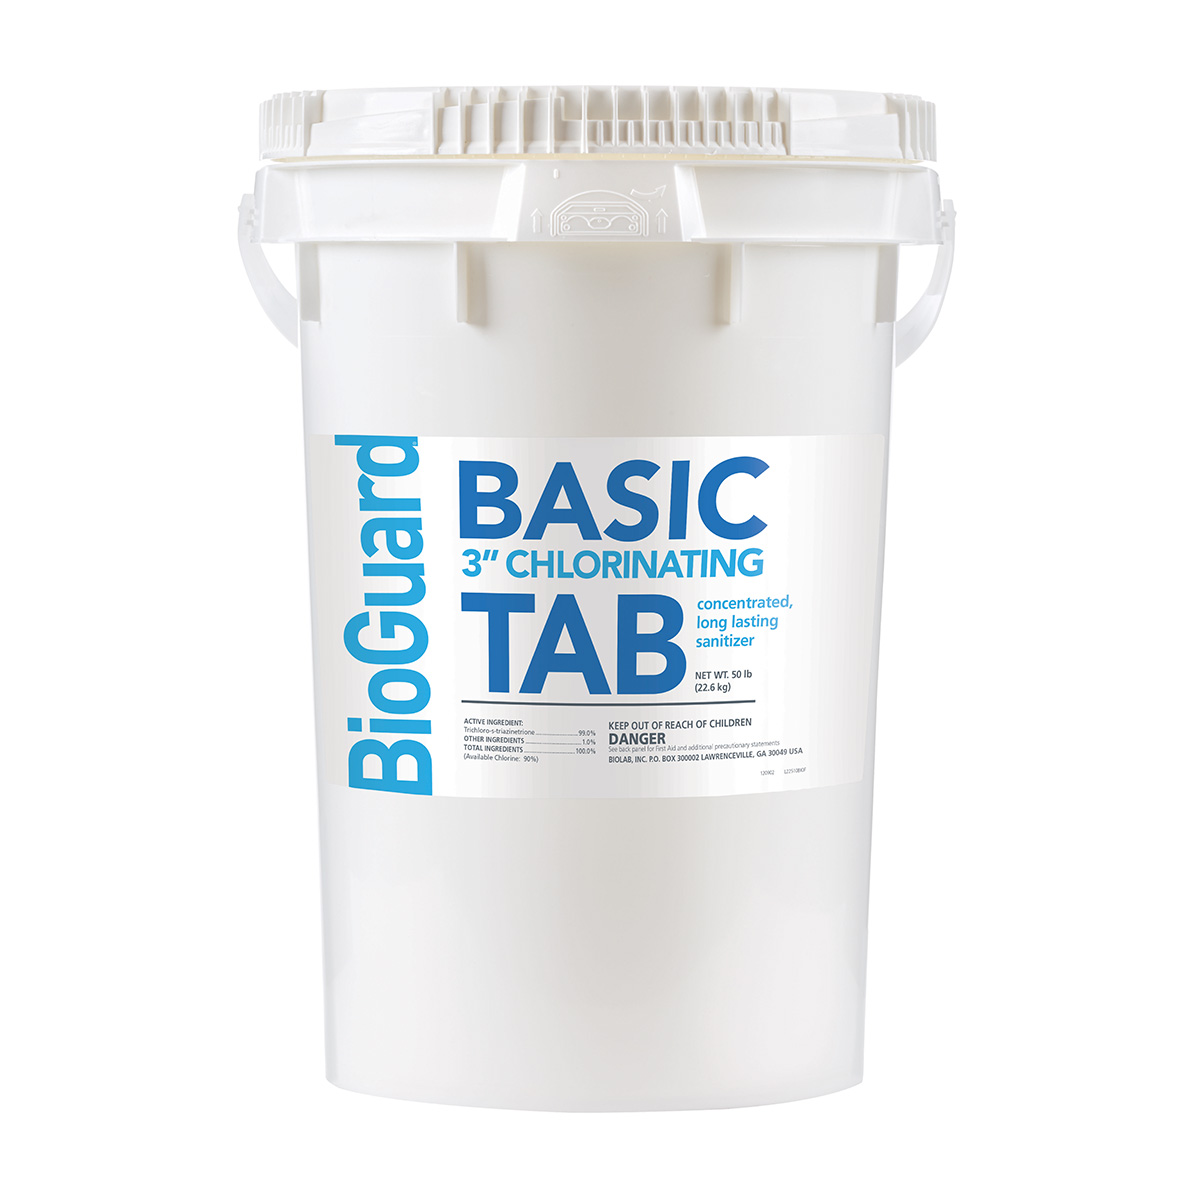 Bioguard basic tabs garden spas pool for Garden spas pool germantown tn